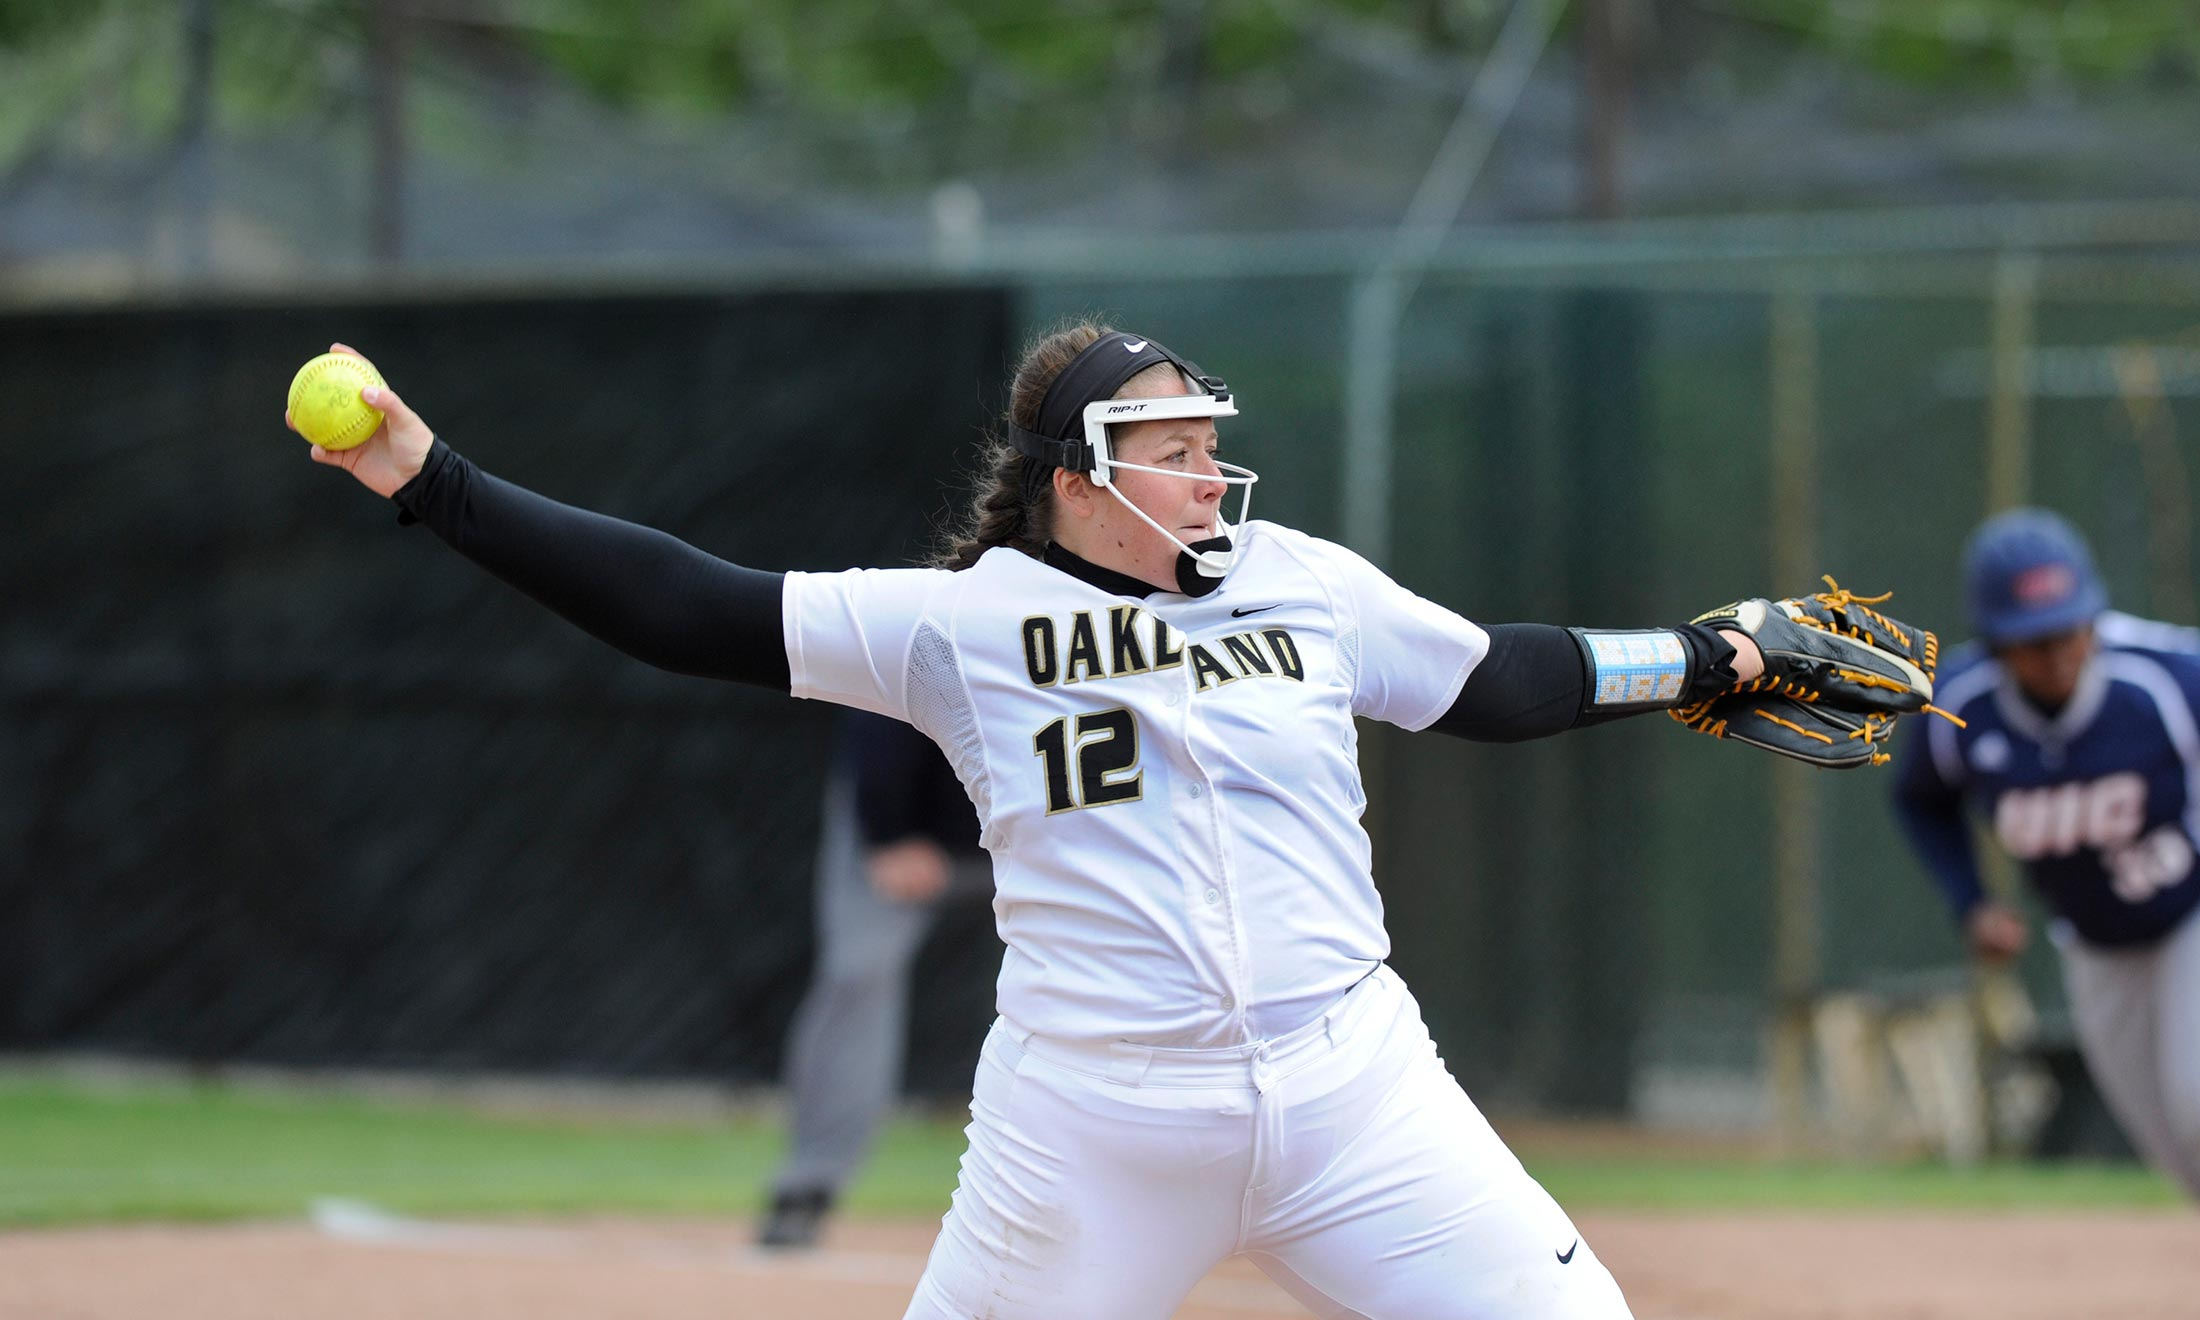 Oakland University softball star Erin Kownacki throws a pitch during a game